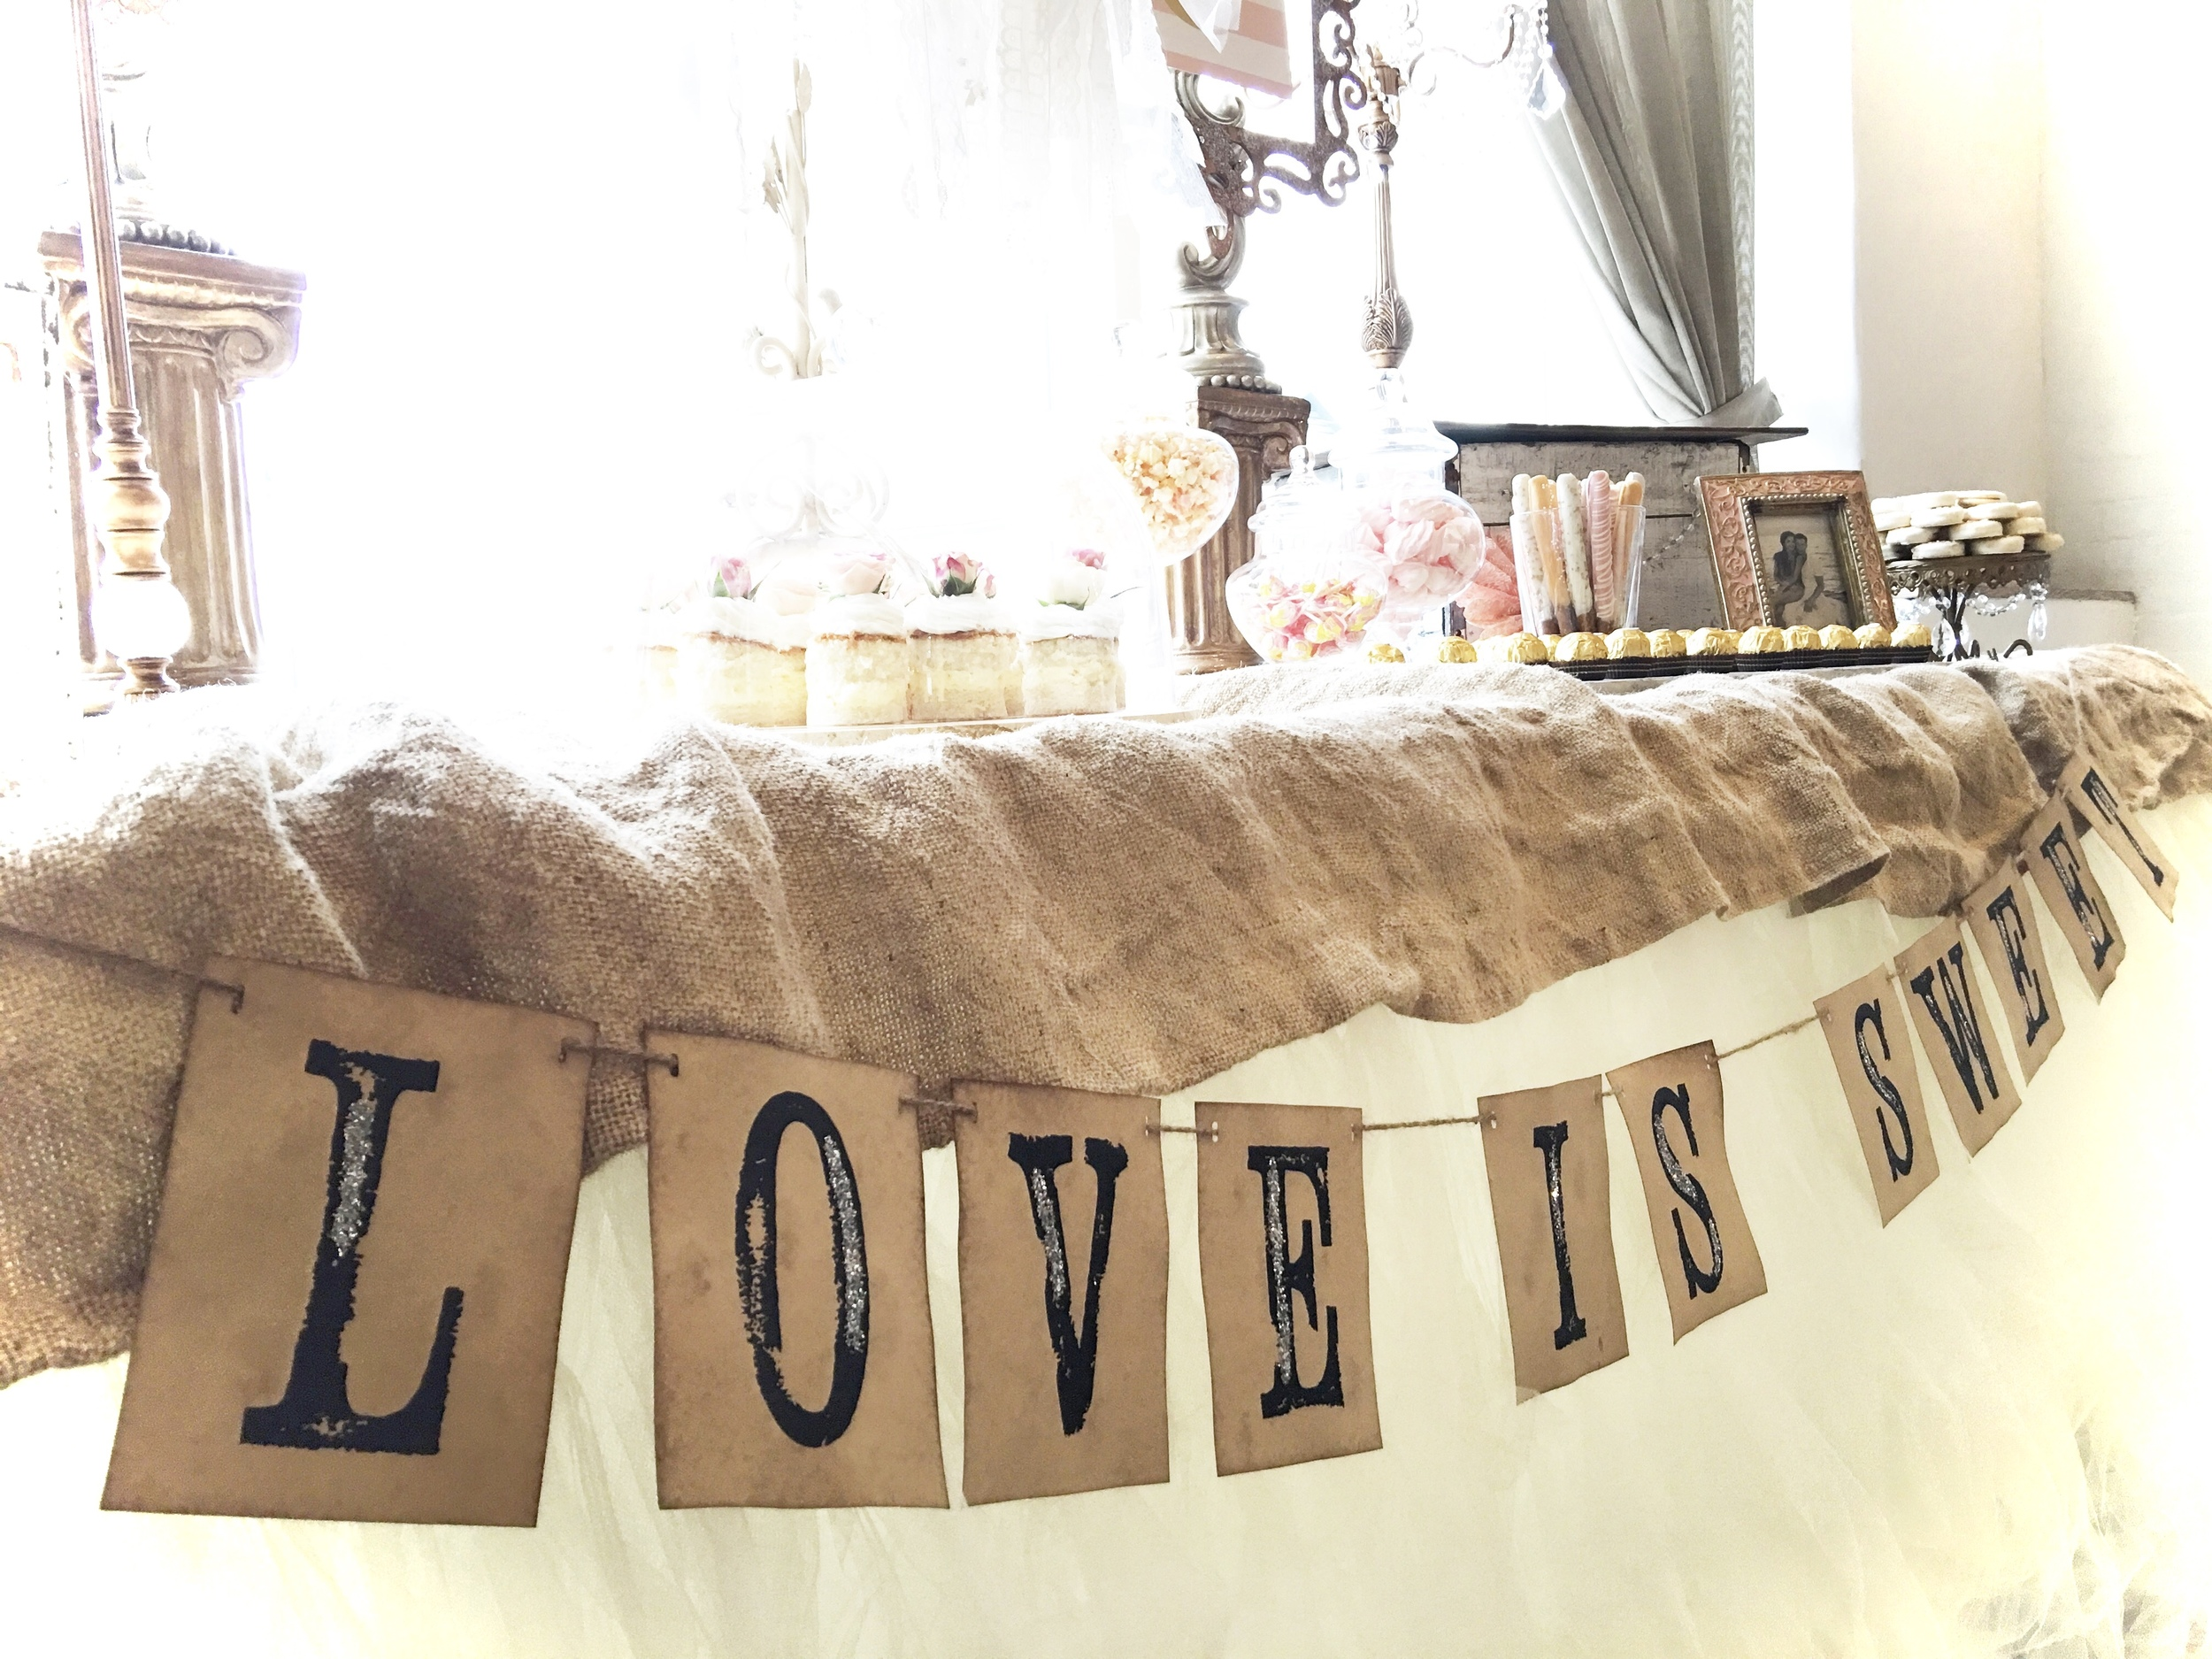 'LOVE IS SWEET' BANNER